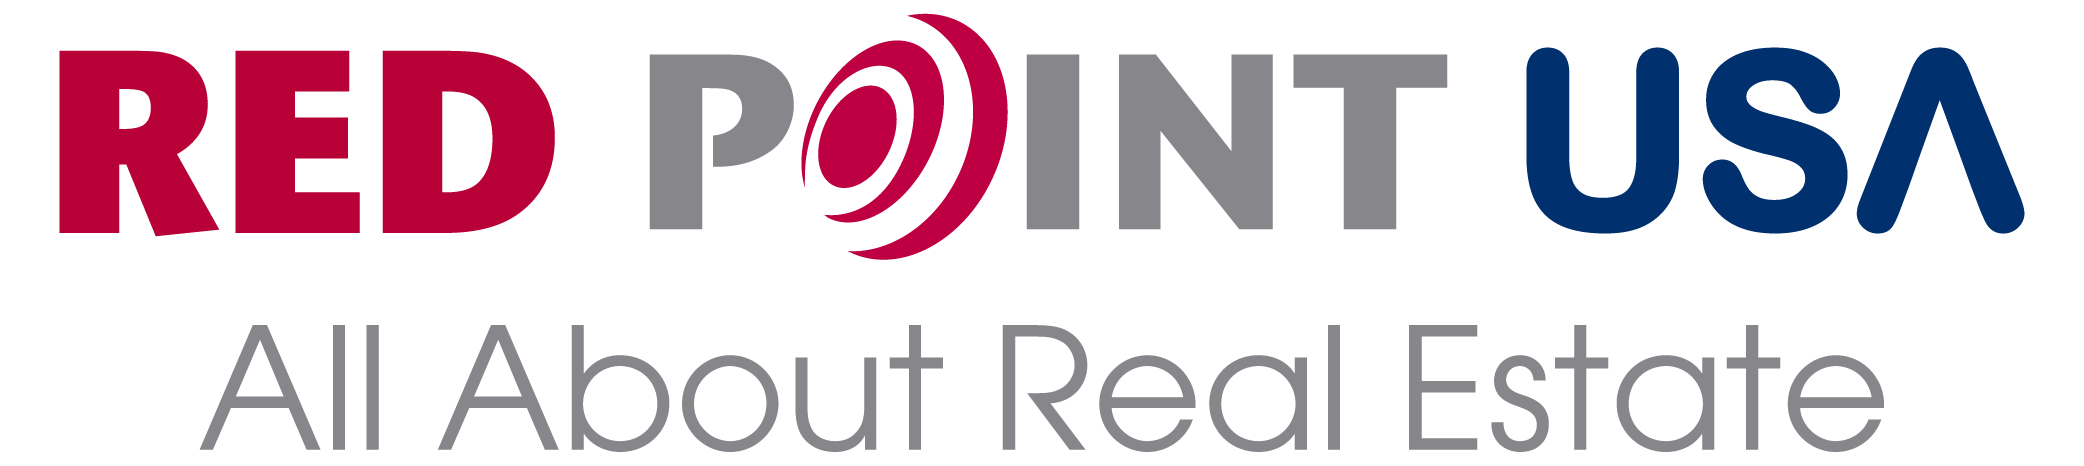 Red Point International